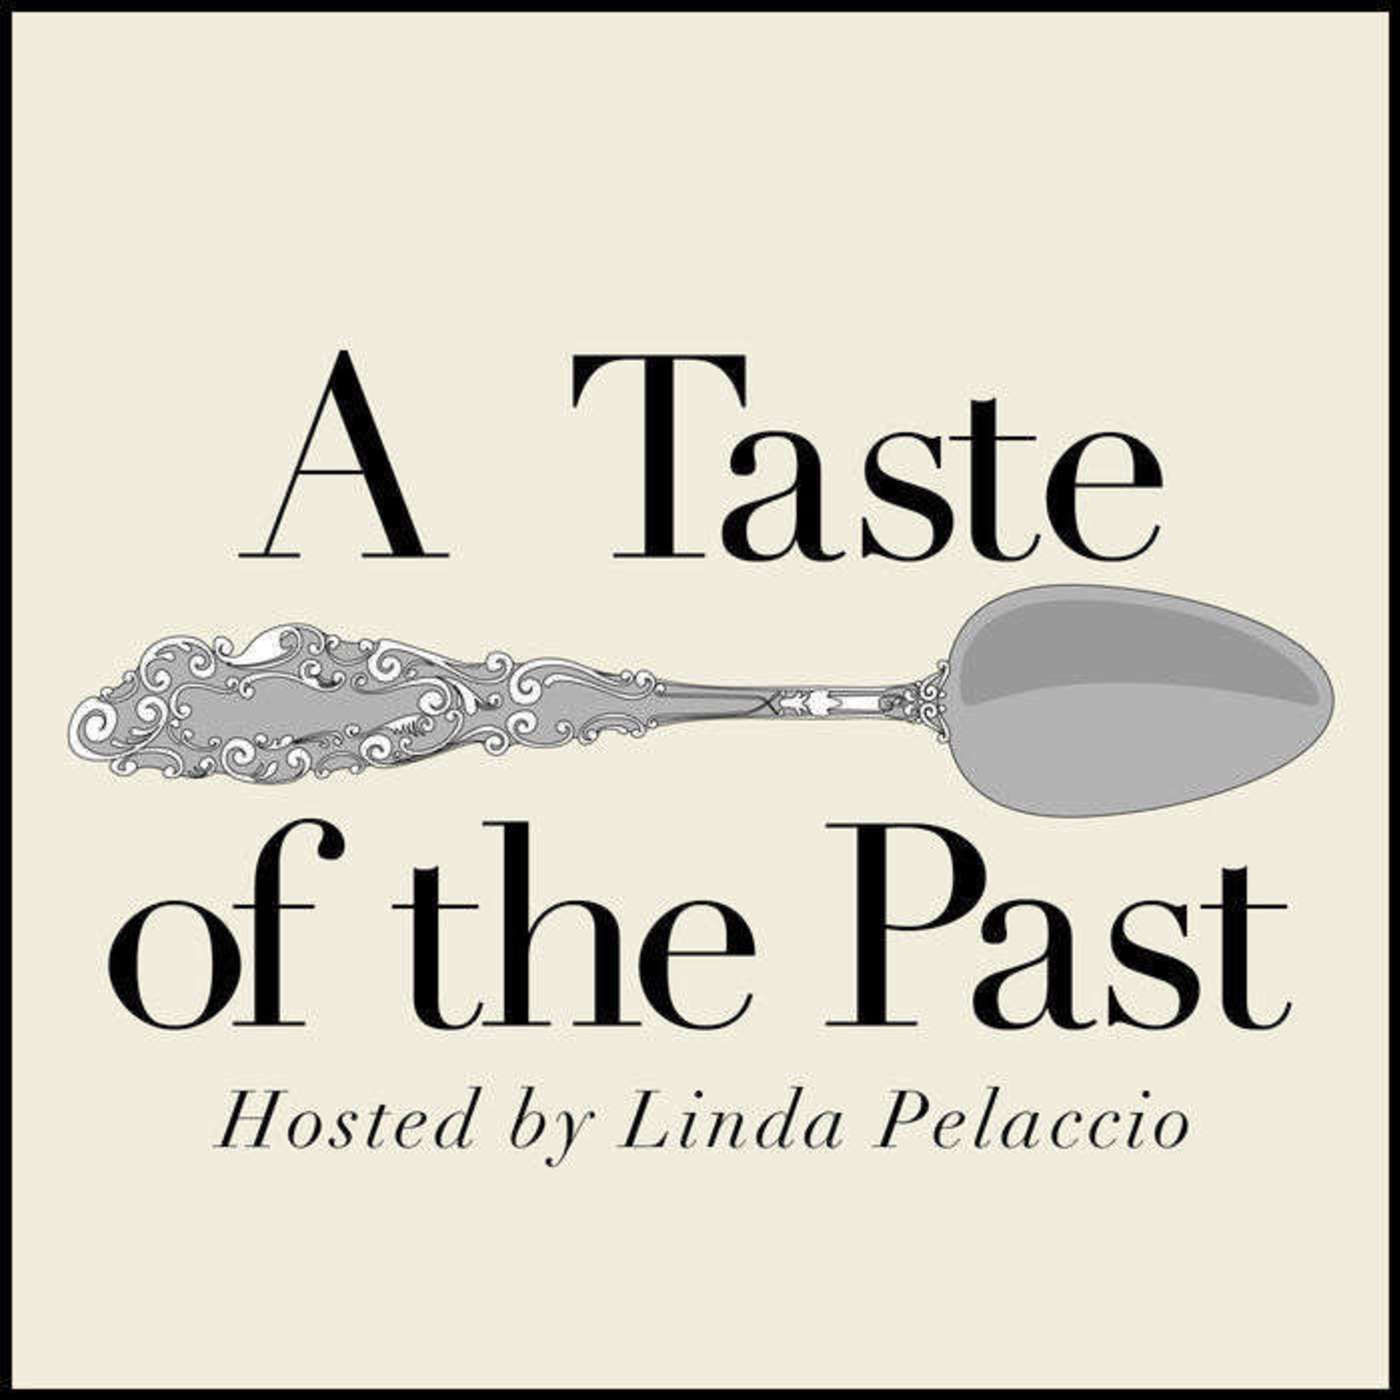 Episode 196: History of Dining on the Trans